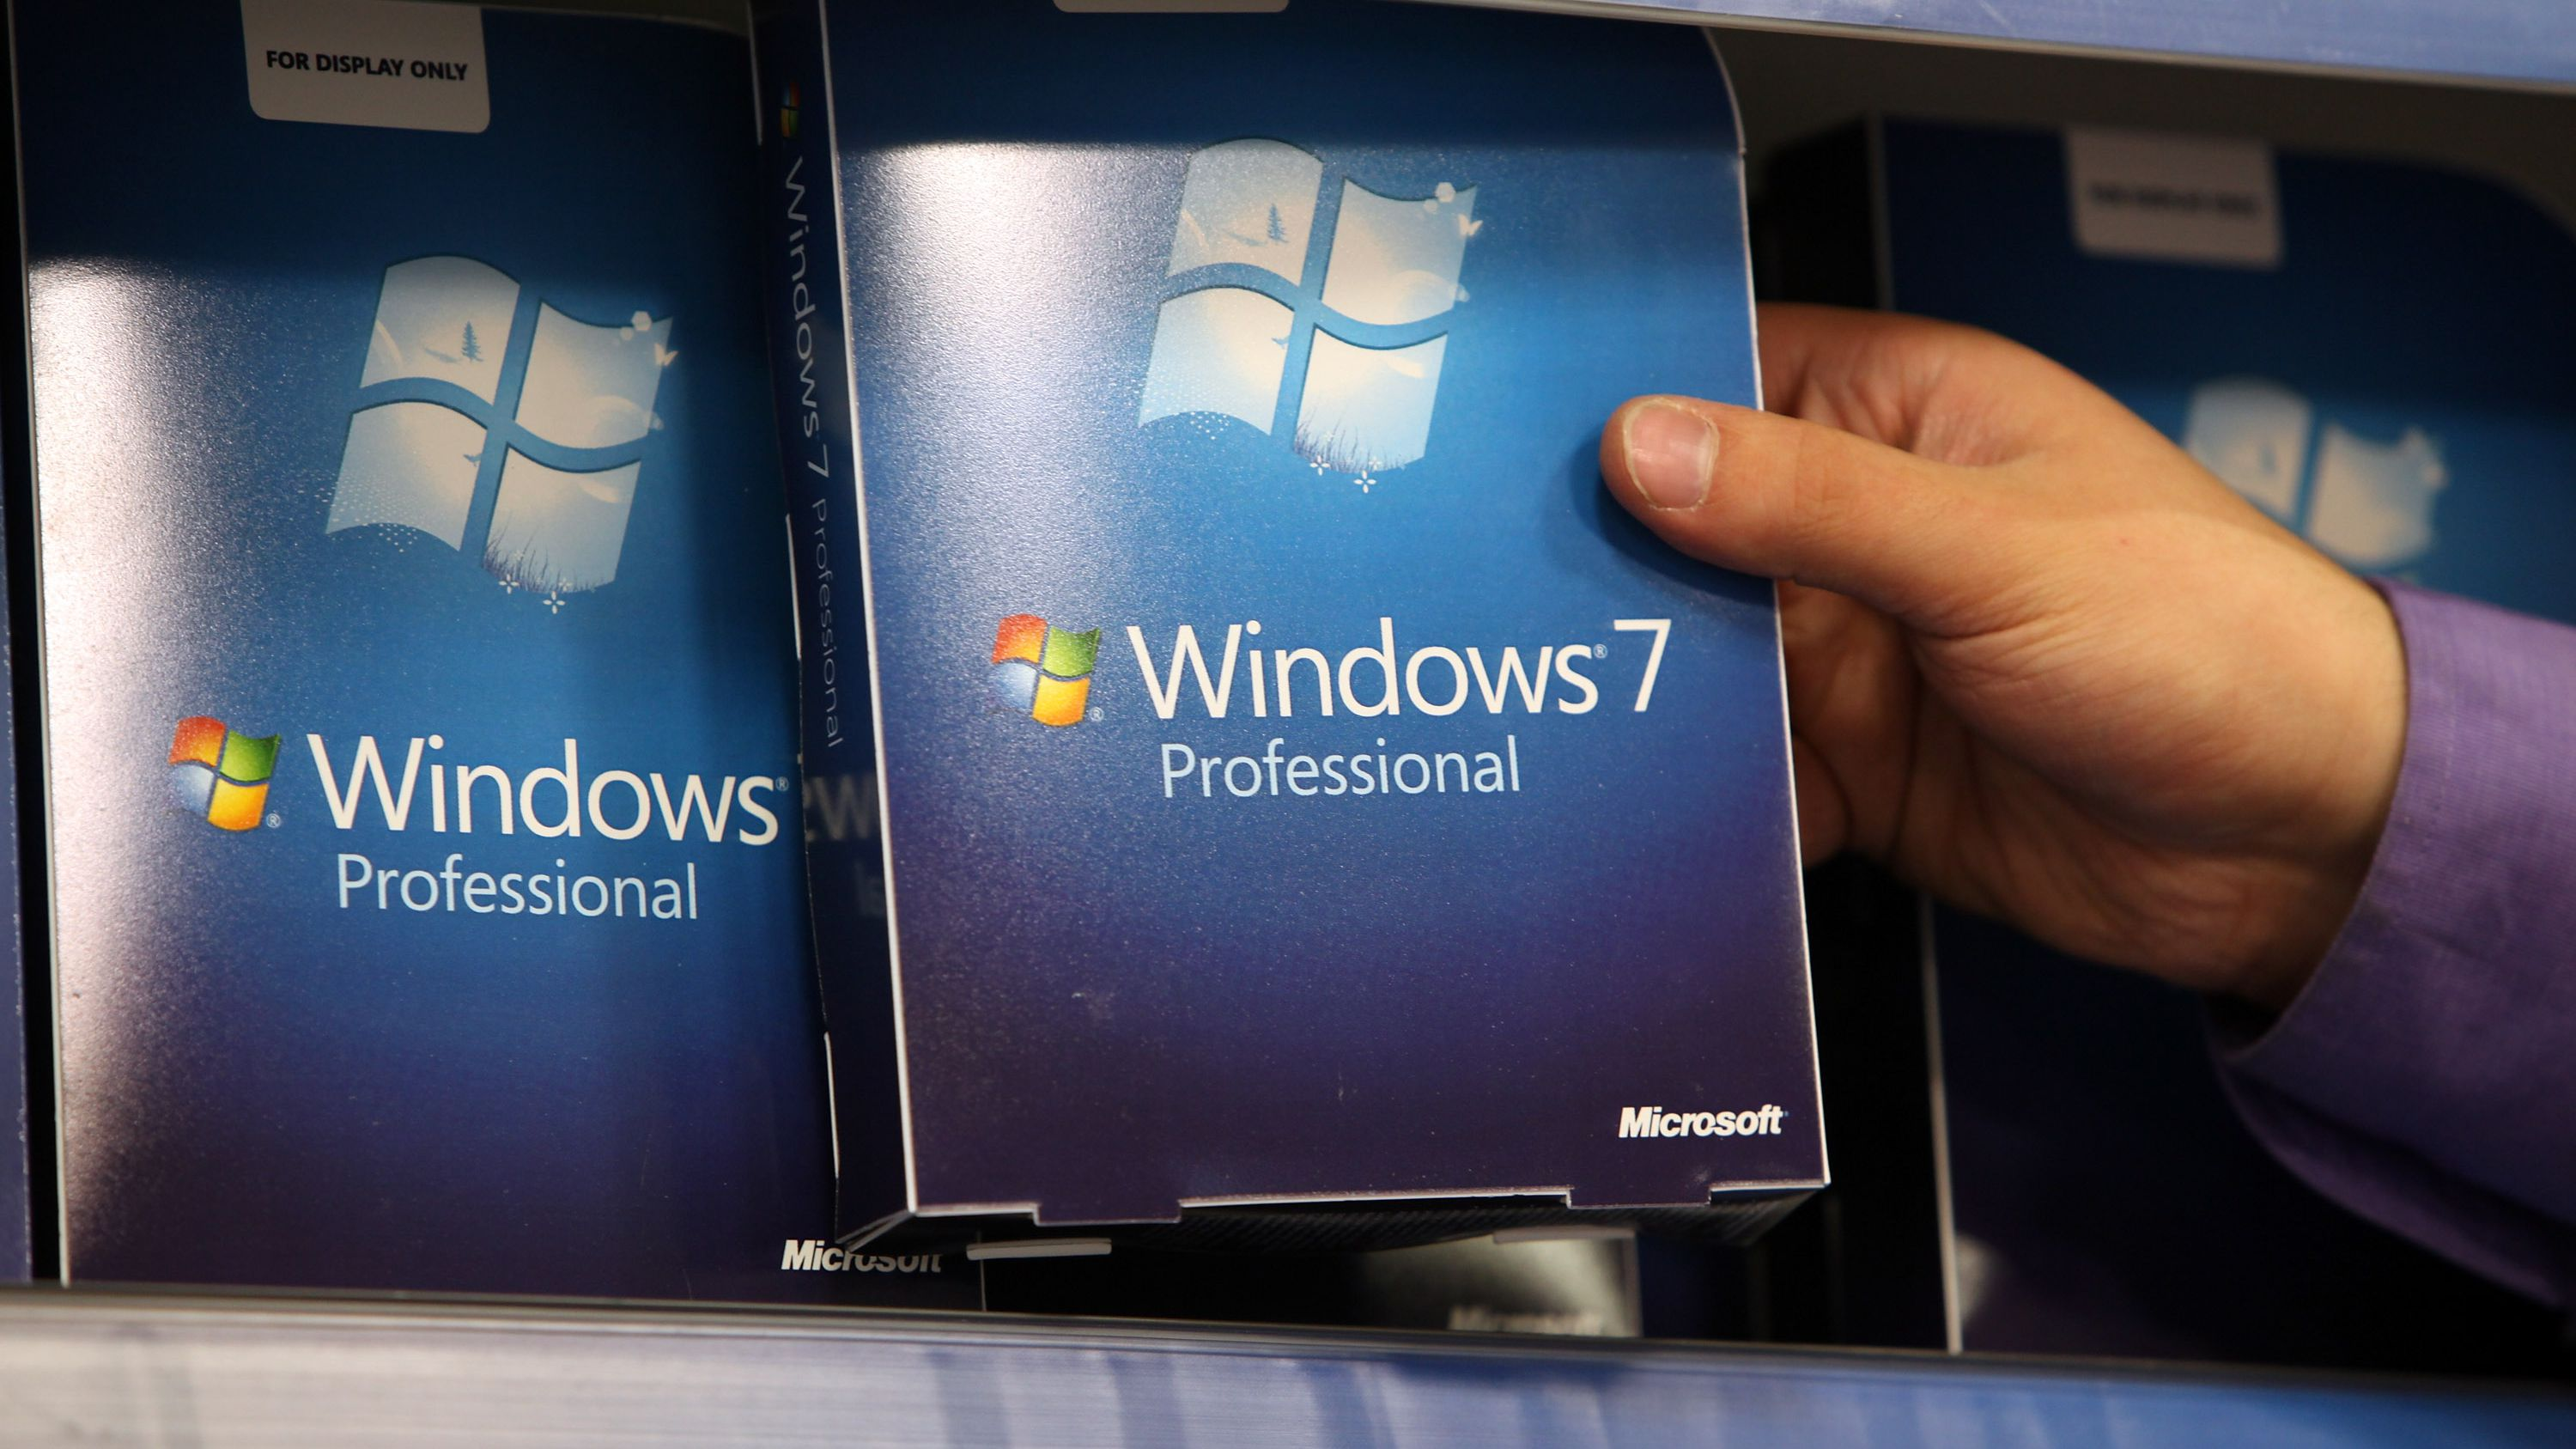 Latest Windows 7 Drivers (August 15, 2019)